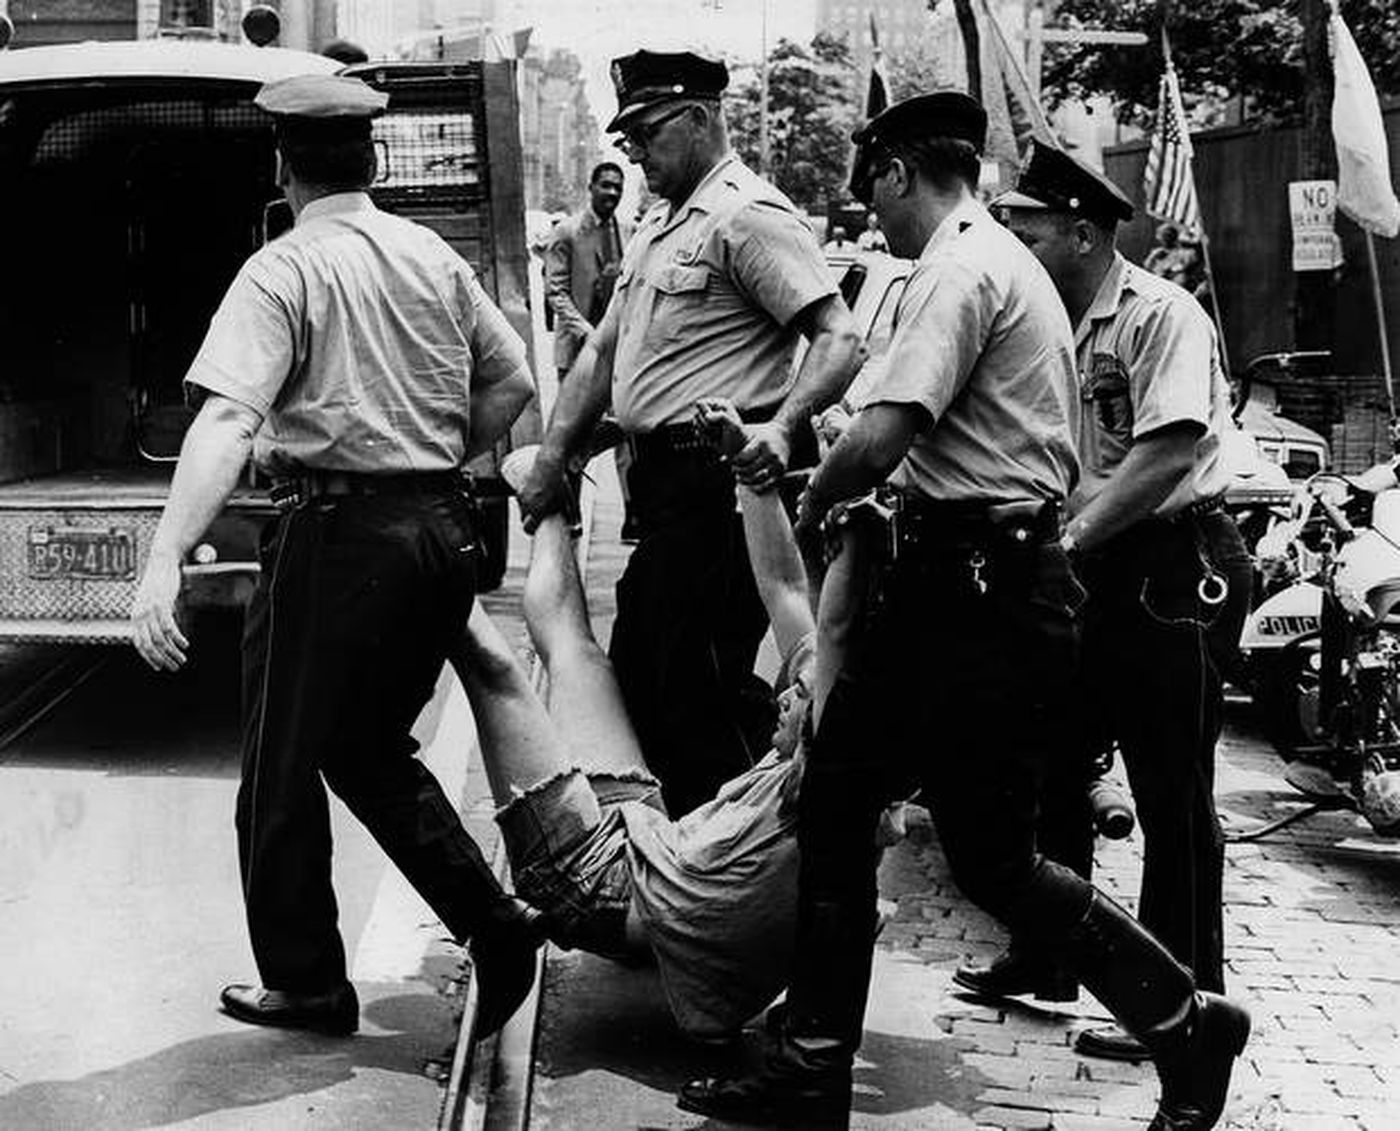 Philadelphia Police carry a protester away from a July 4, 1966 anti-Vietnam War protest held at Independence Hall. A new study proves police are twice as likely to break up a left-wing demonstration than a right-wing one, like Wednesday's storming of the U.S. Capitol.